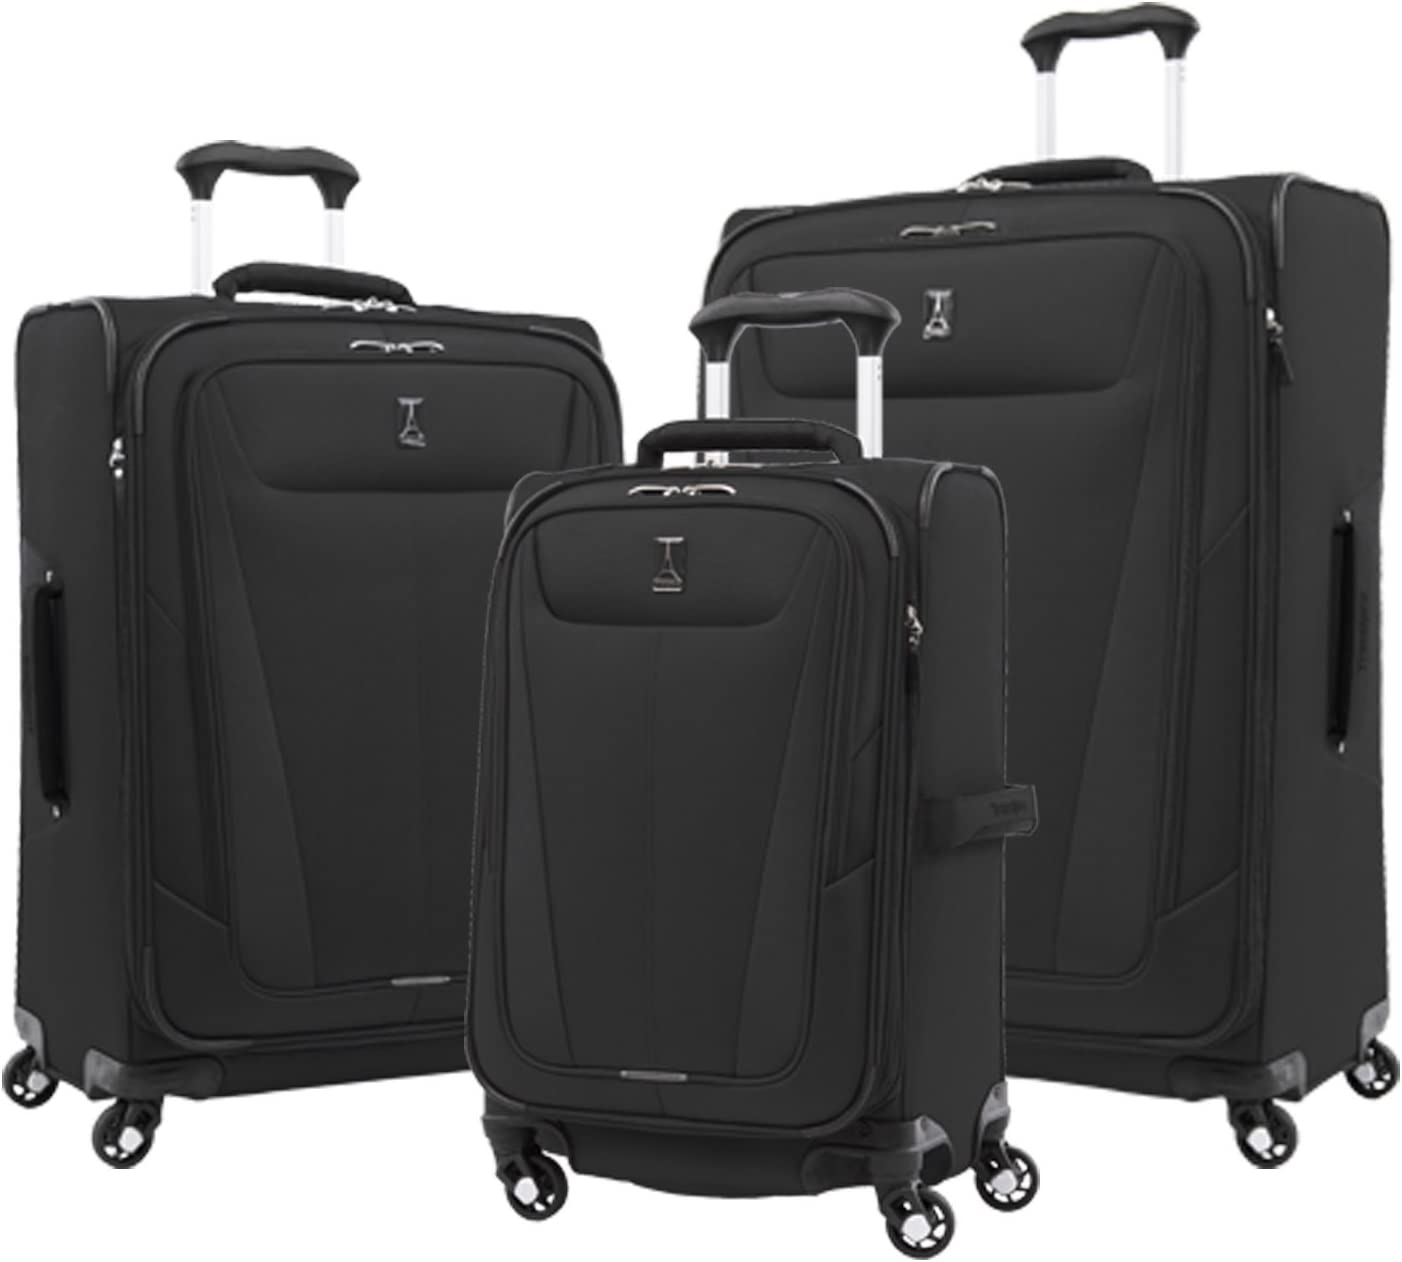 Travelpro Luggage Maxlite 5 3-PC Set 21 Carry-On, 25 29 Exp. Spinners Black